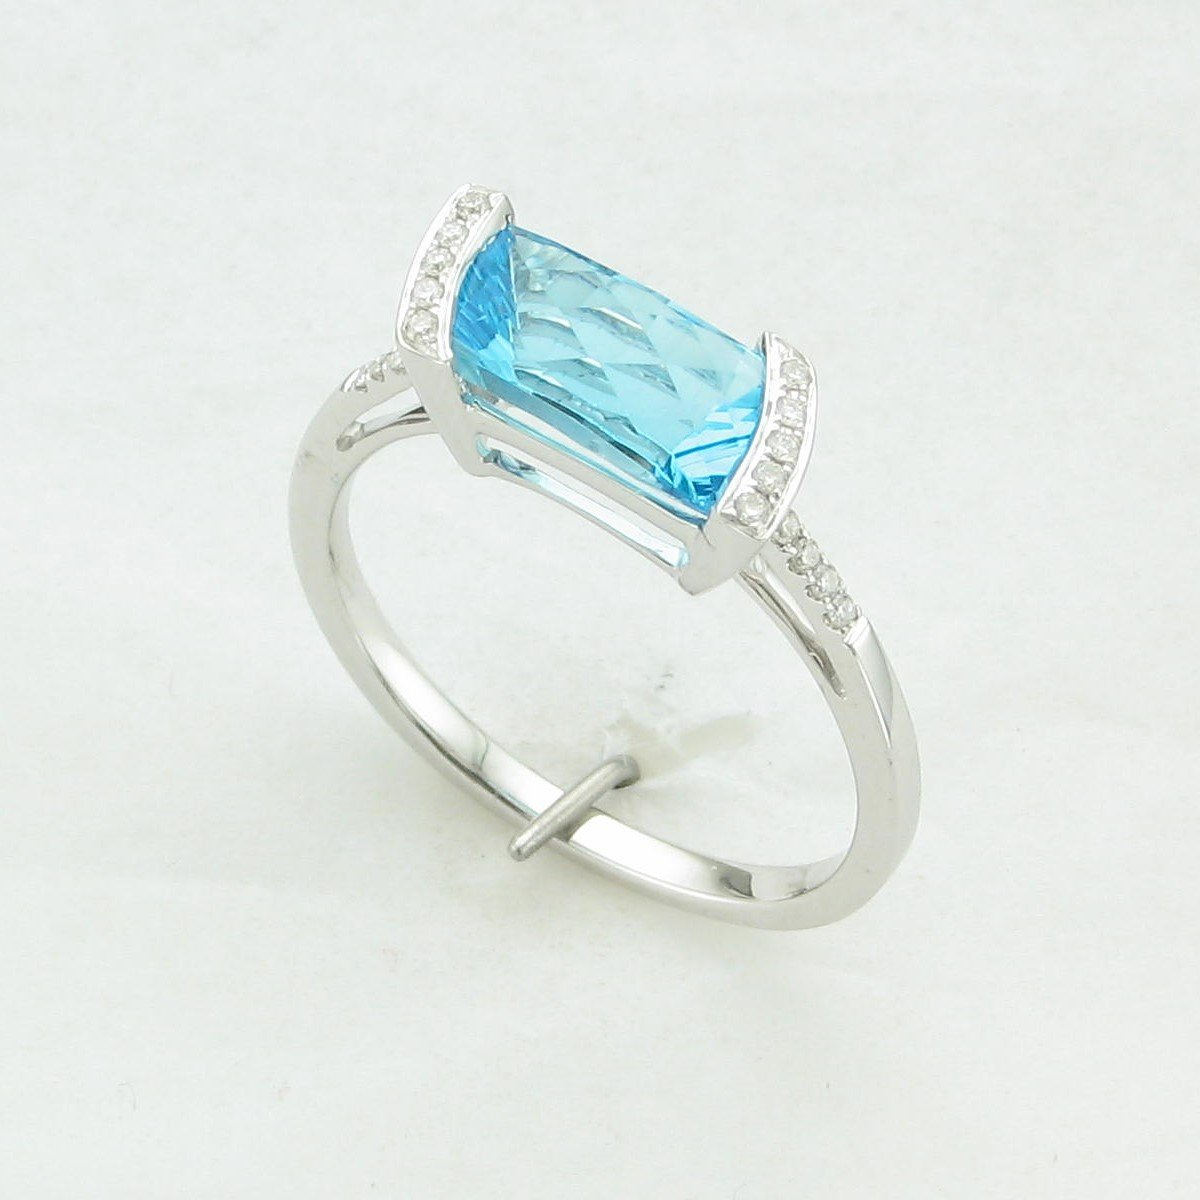 1.61ct Swiss Blue Topaz and Diamond Ring set in 14k White Gold